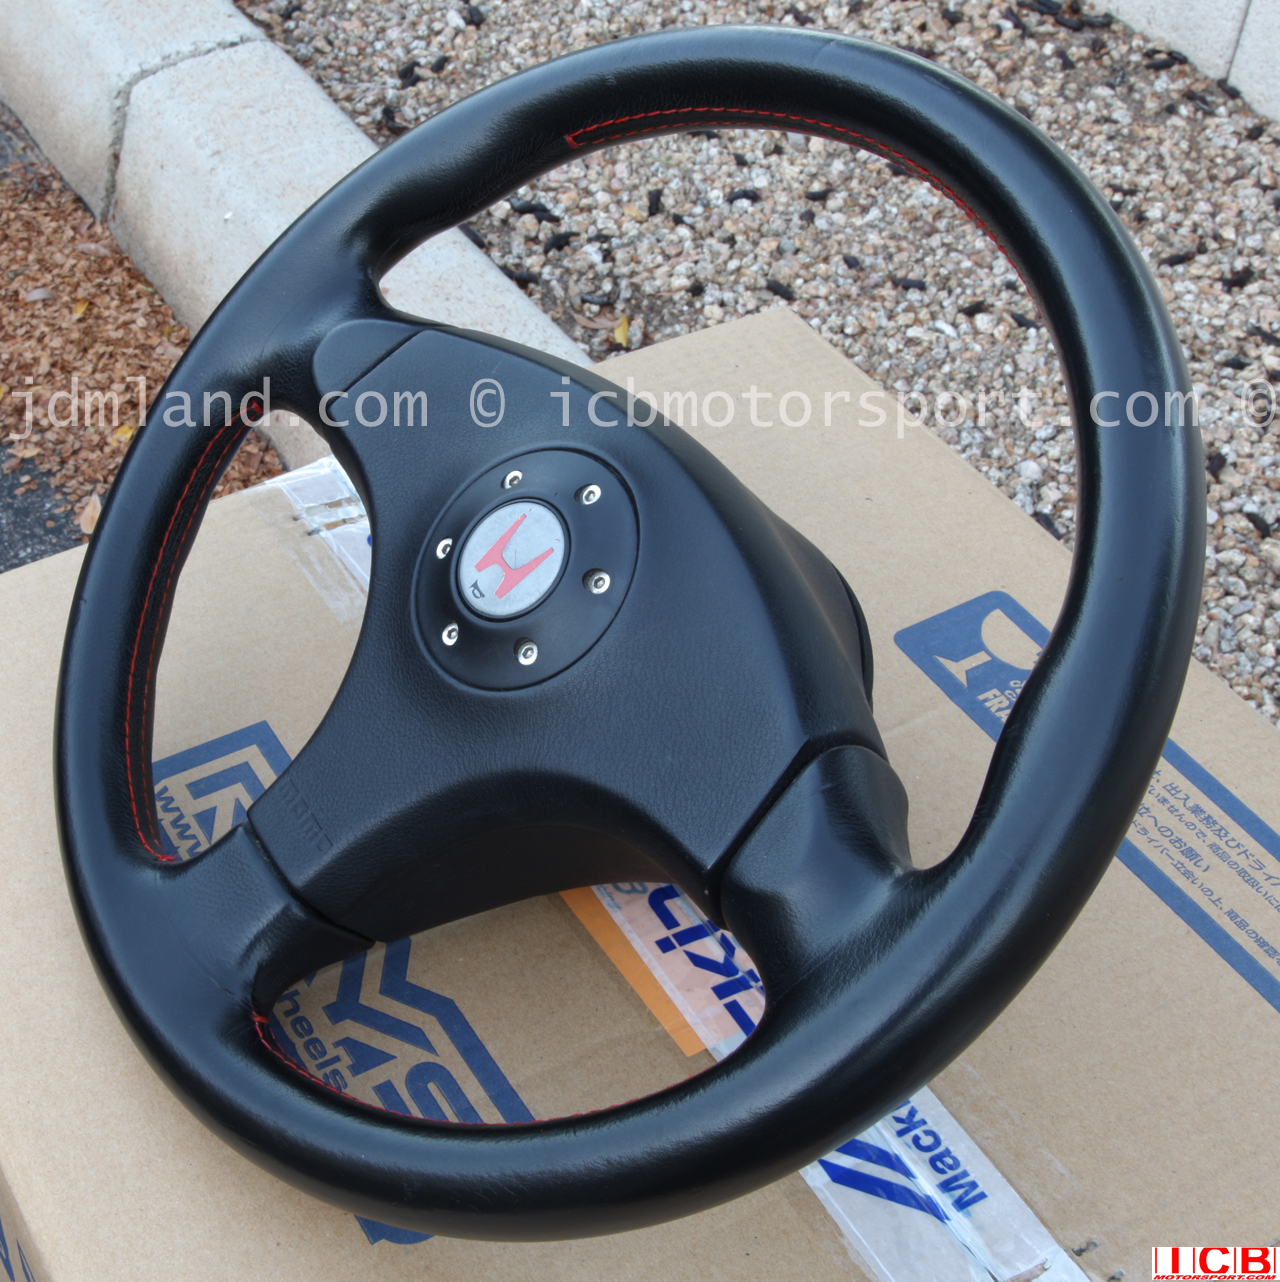 used jdm integra dc2 type r 96 spec steering wheel non srs. Black Bedroom Furniture Sets. Home Design Ideas